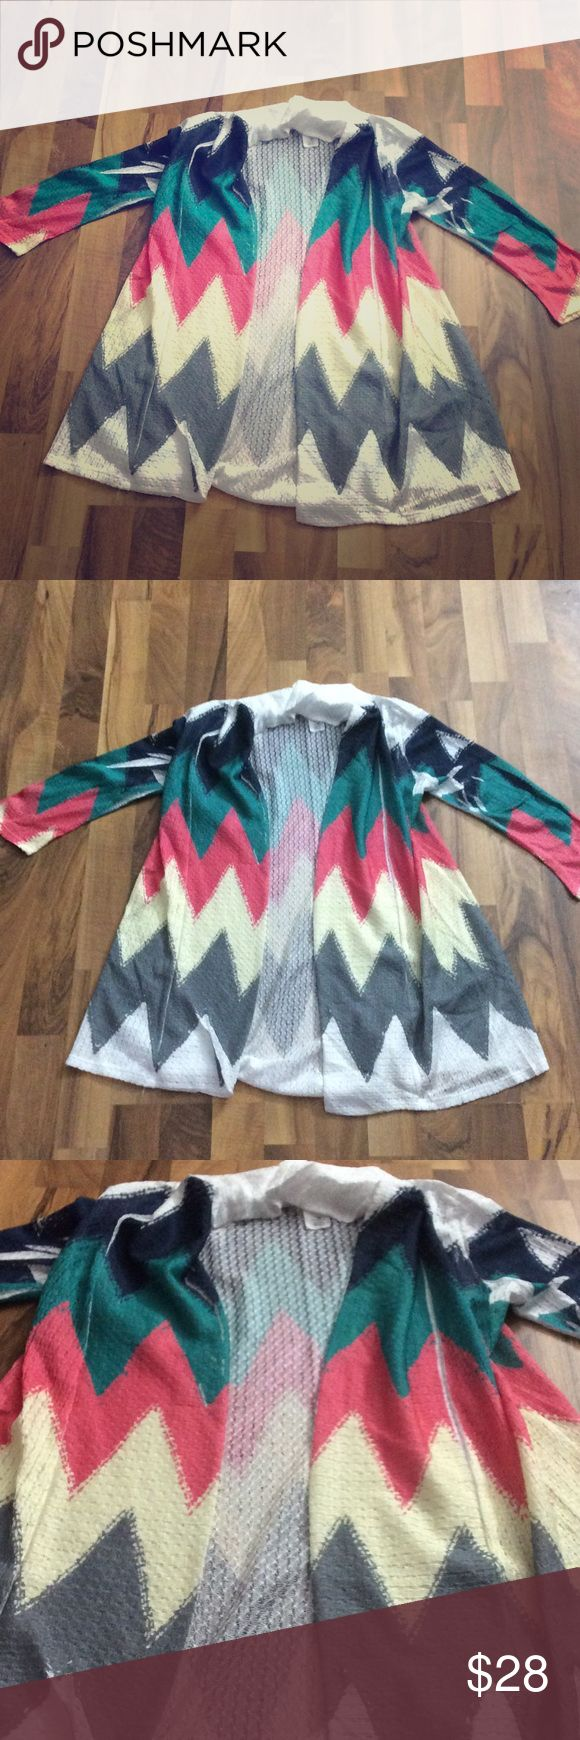 Chevron Print Open Front Cardigan Top - Small This cute top has a chevron print and is lightweight. It is open front with no buttons. Comfy stretch material unbranded Tops Blouses